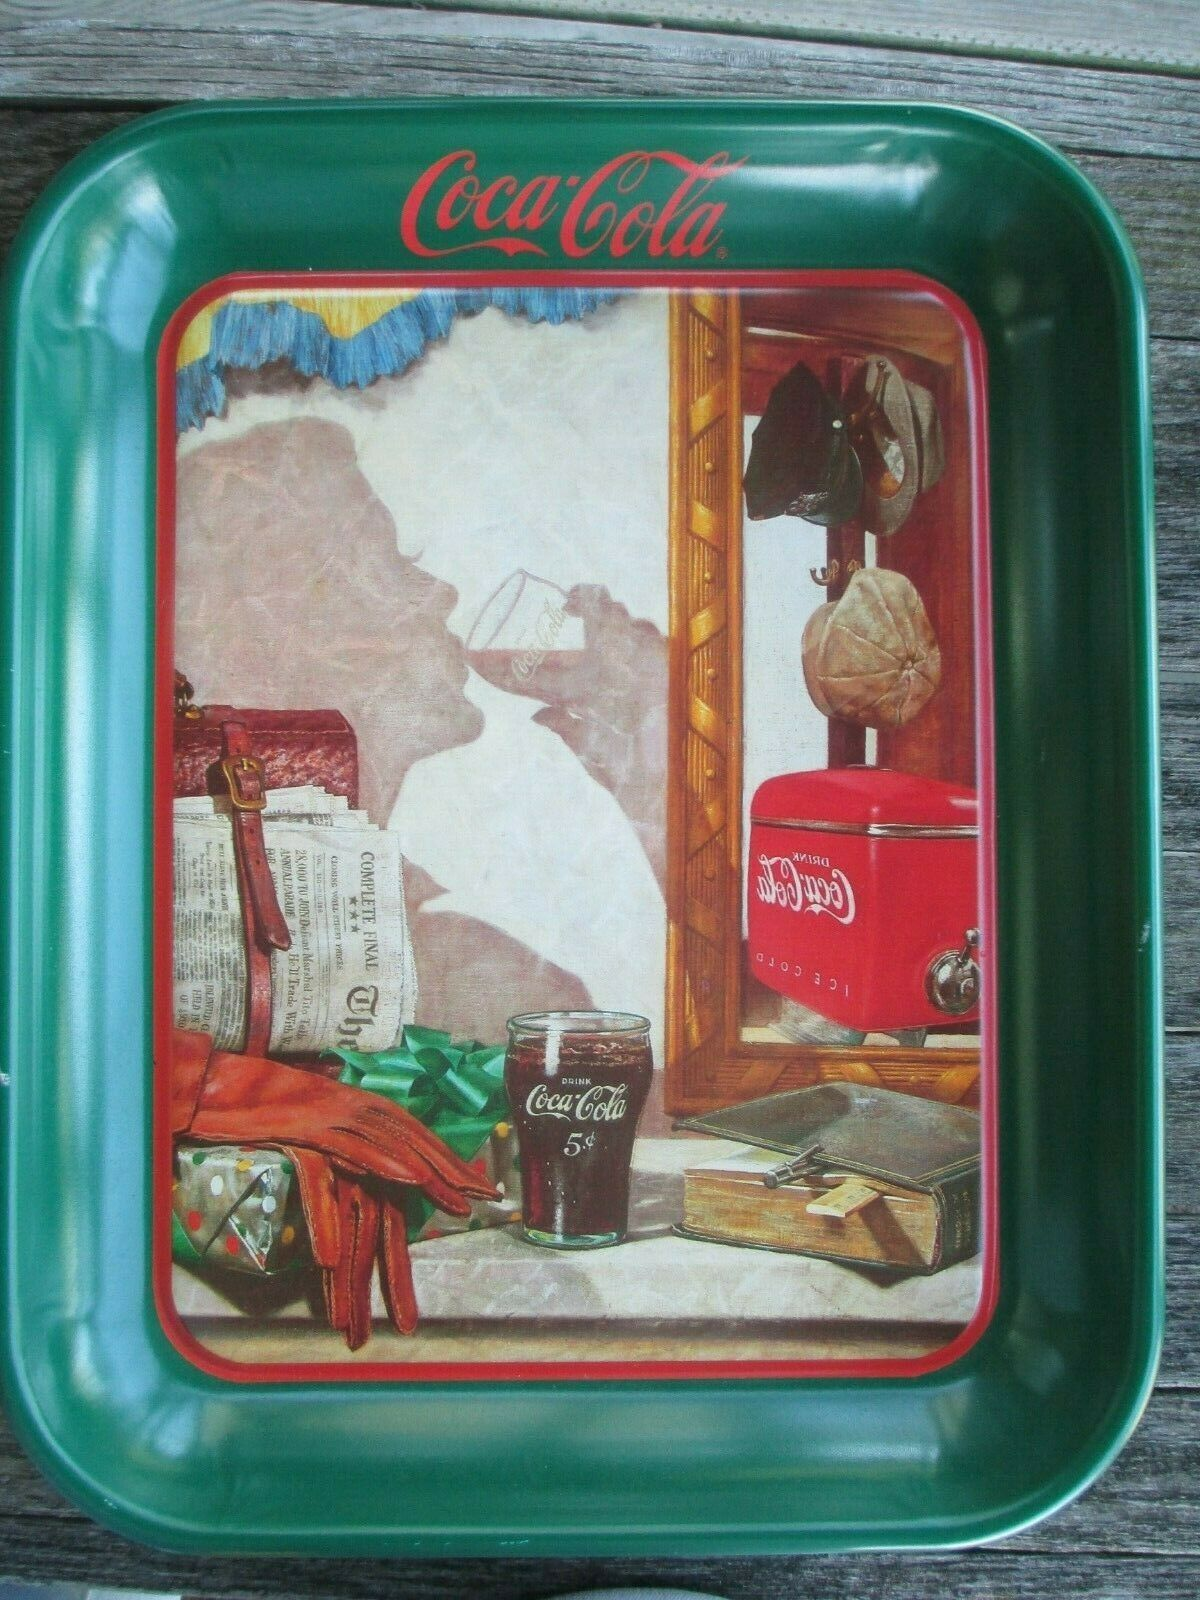 Primary image for Coca-Cola Tray Reflections in the Mirro Reproduction of 1950 Ad Art Issued 1993